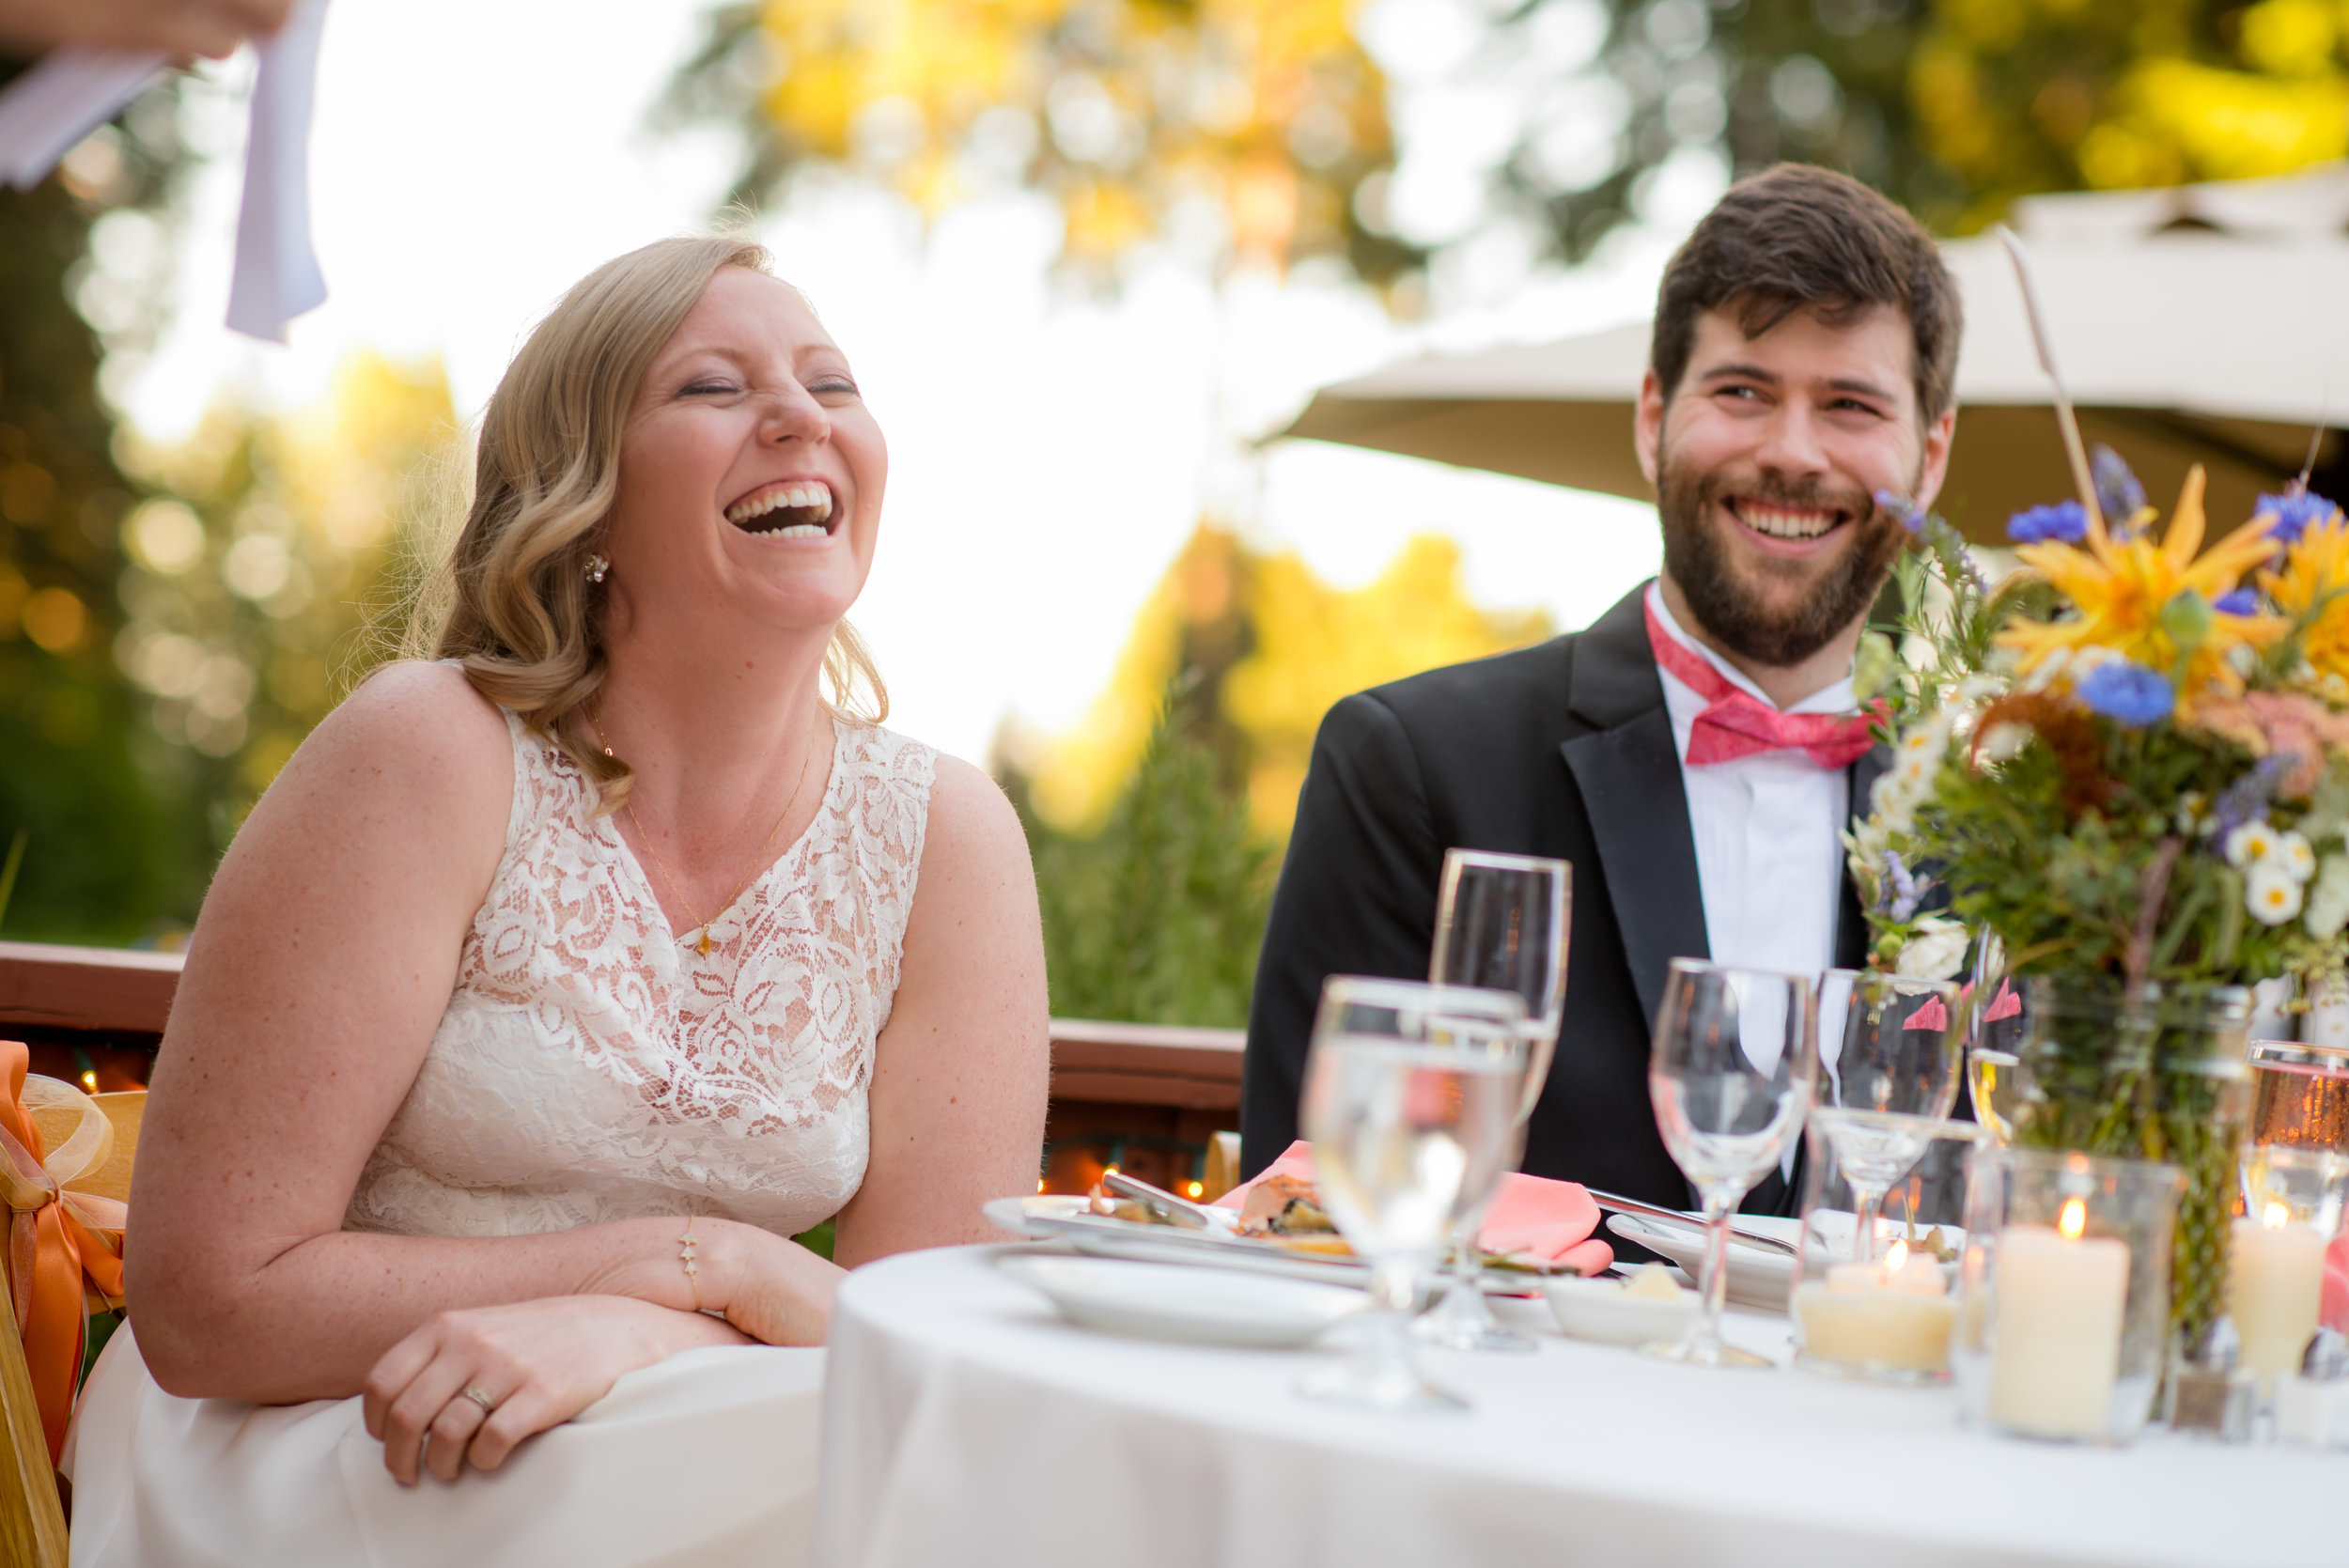 suz-bryan-031-mountain-terrace-woodside-wedding-photographer-katherine-nicole-photography.JPG